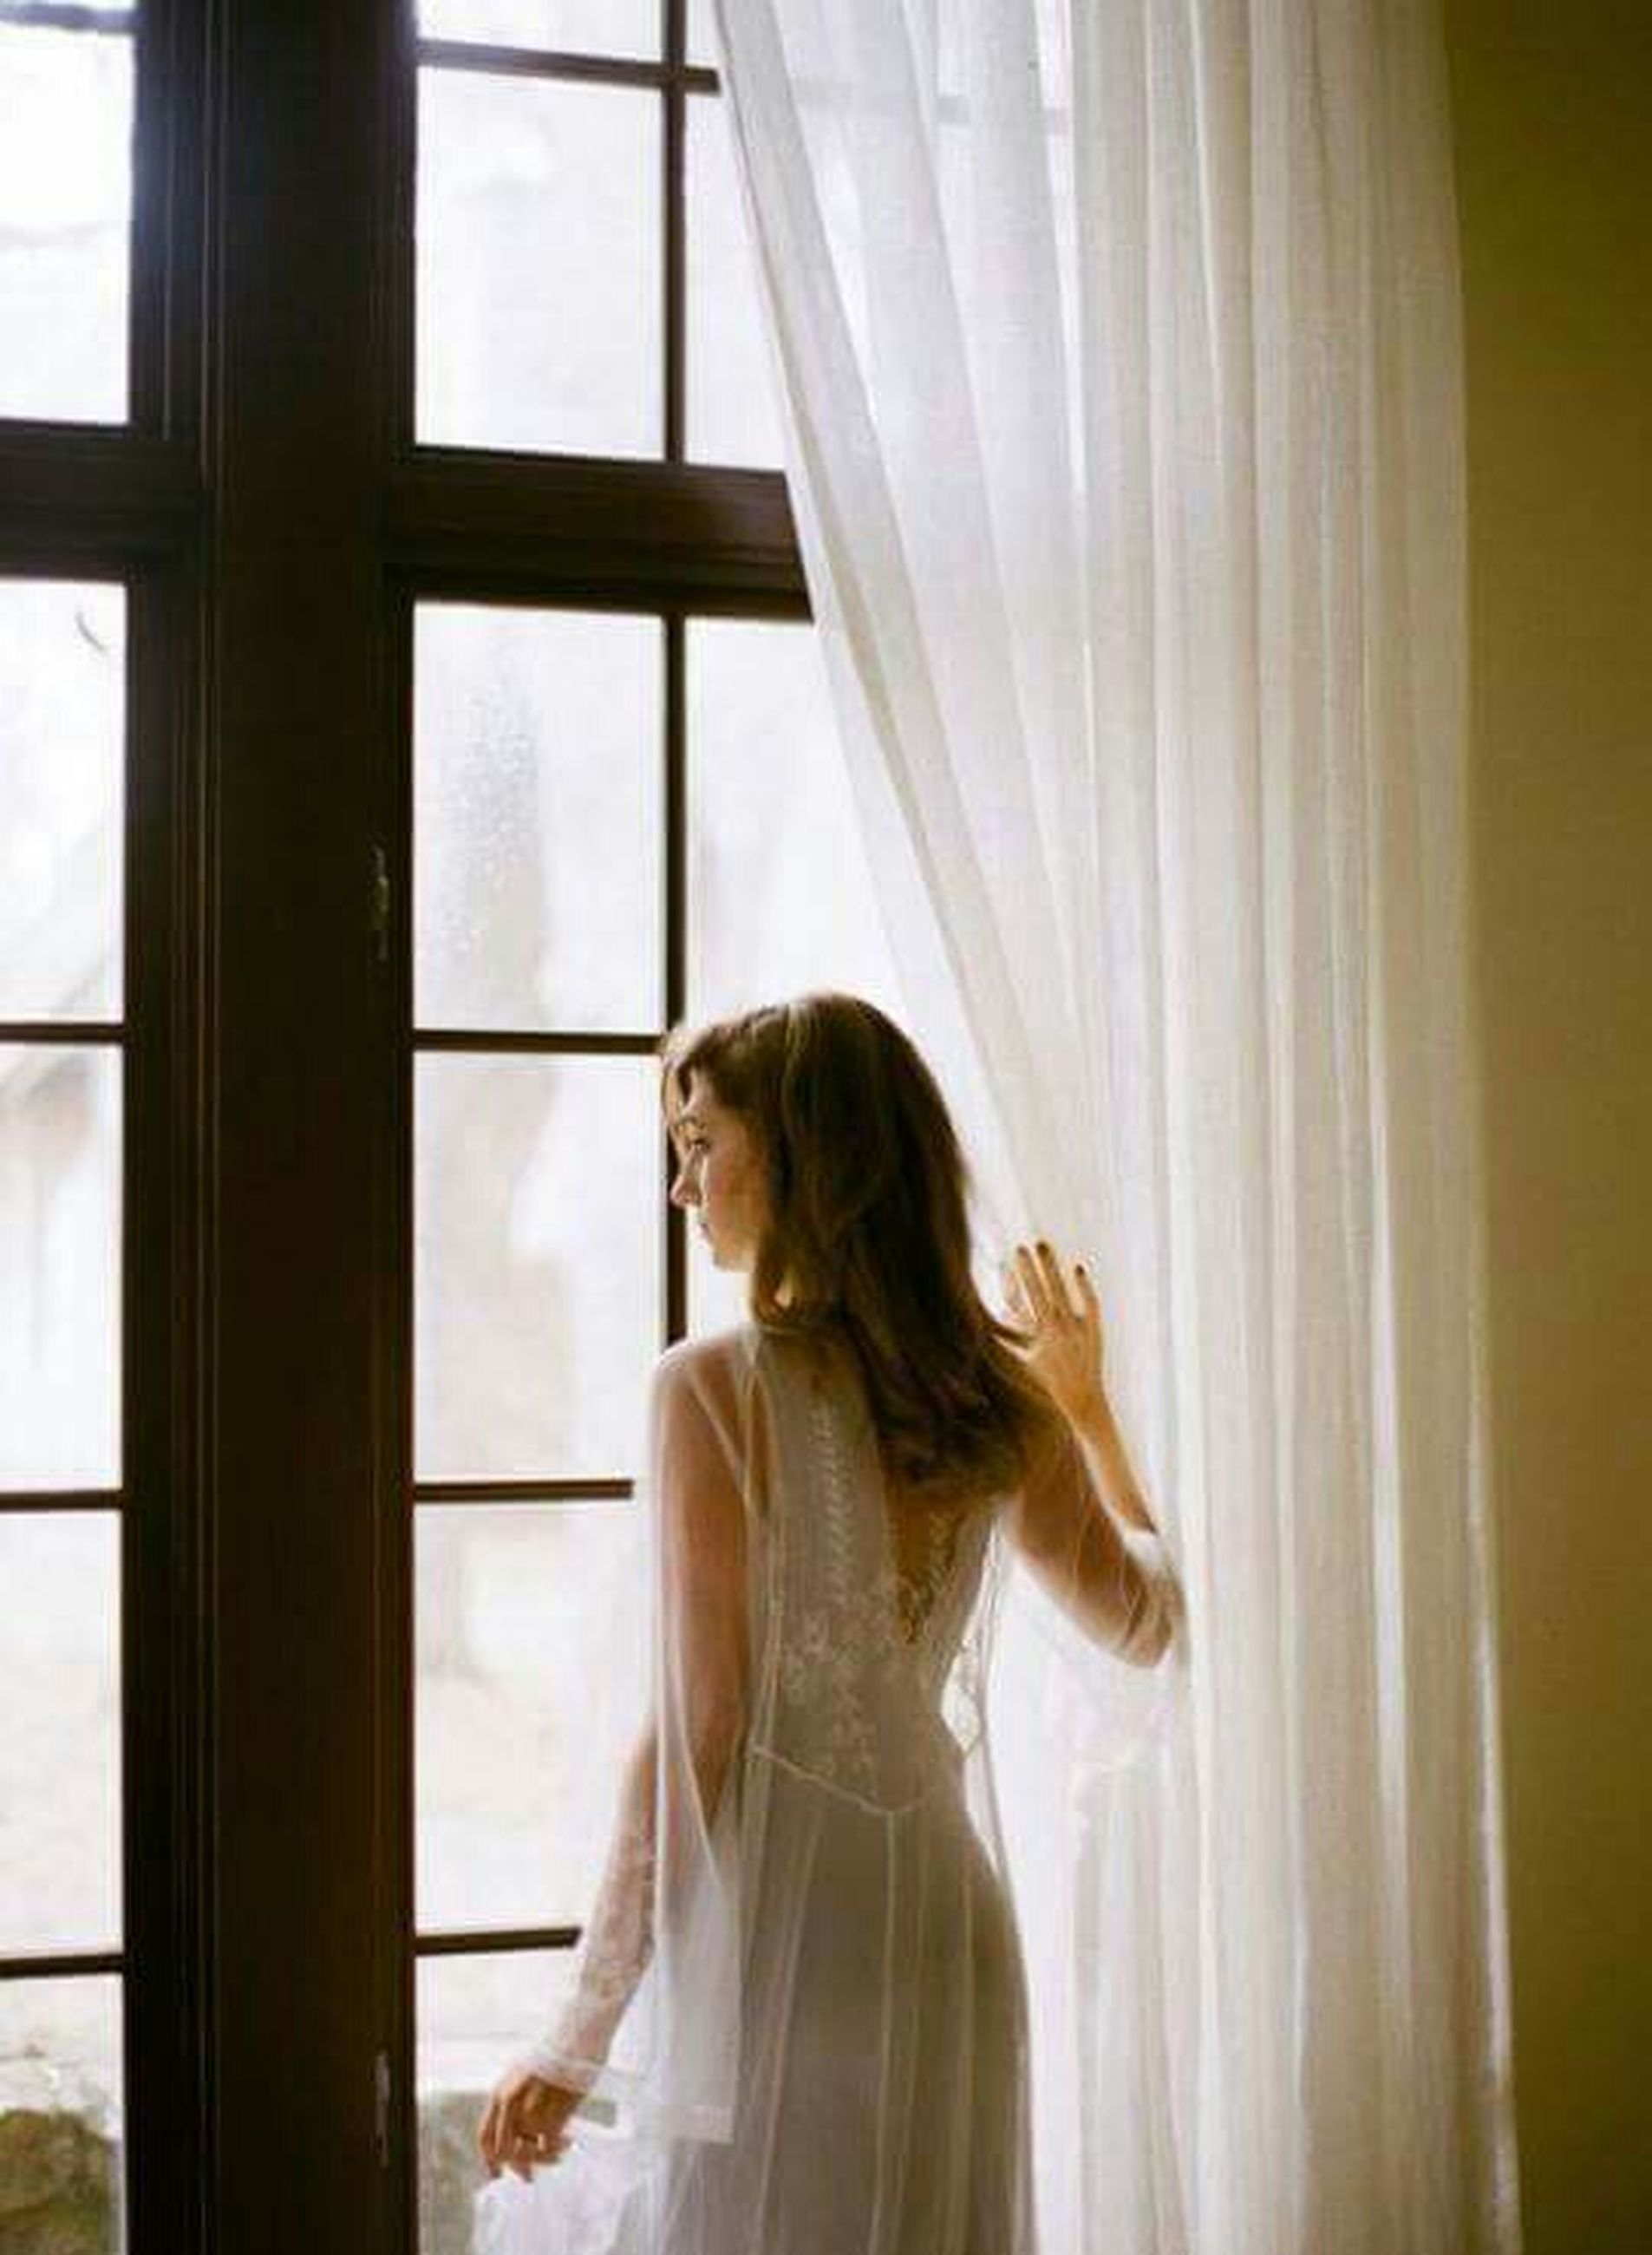 indoors, window, lifestyles, young women, young adult, curtain, long hair, standing, person, waist up, leisure activity, three quarter length, home interior, rear view, casual clothing, contemplation